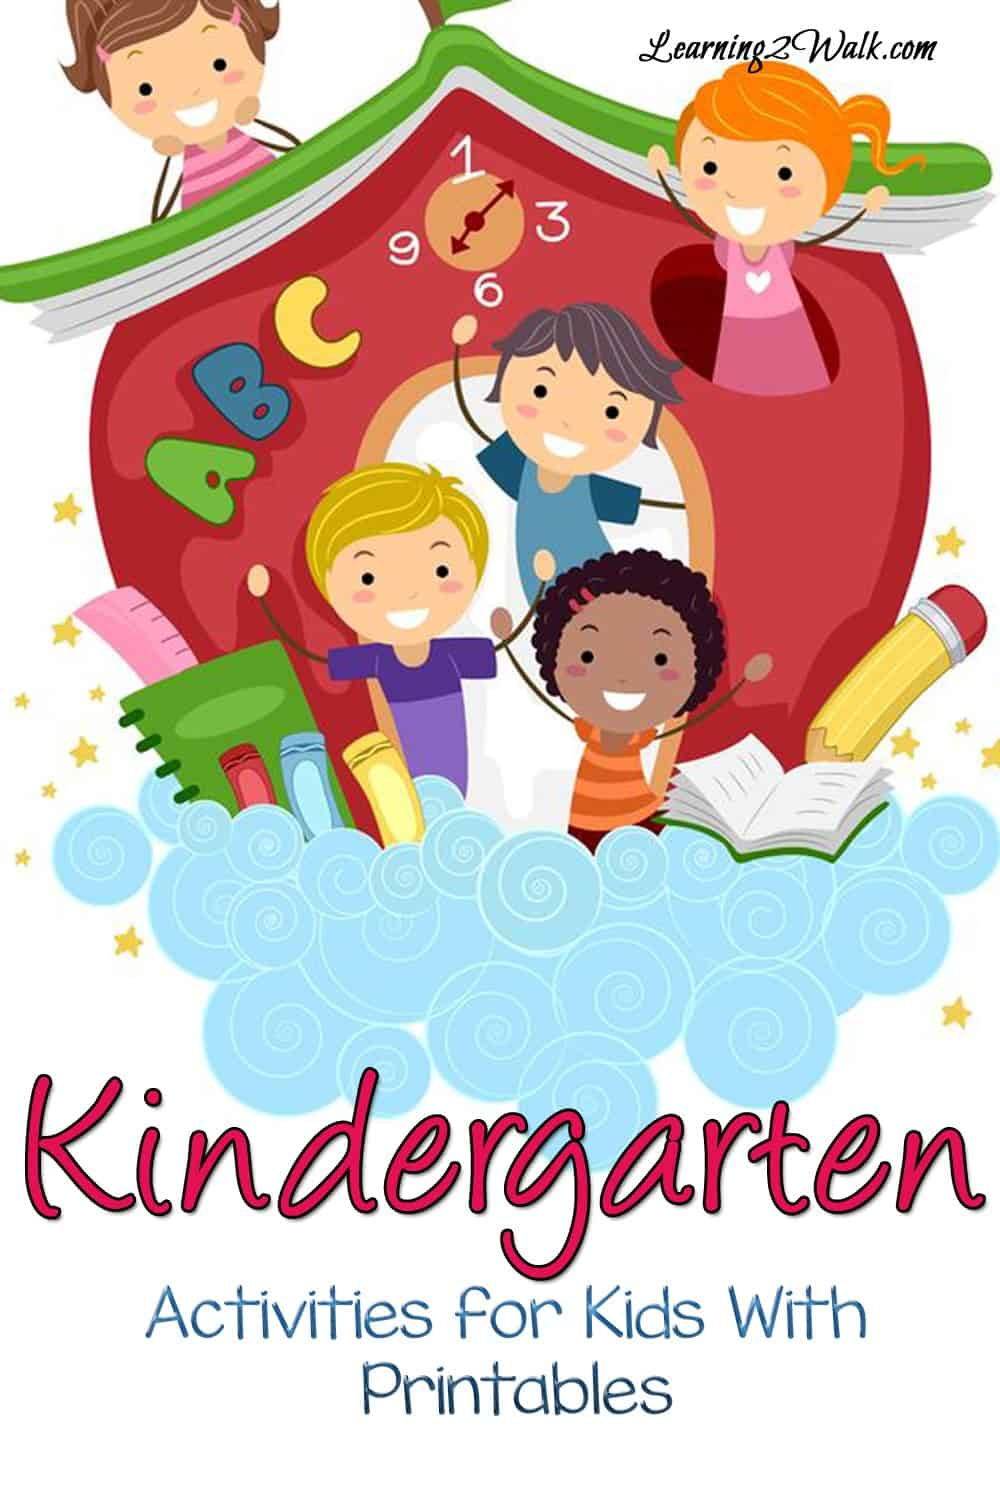 Do you have a child in kindergarten? You should definitely try some of the kindergarten activities listed here as well as use some of the themed kindergarten worksheets